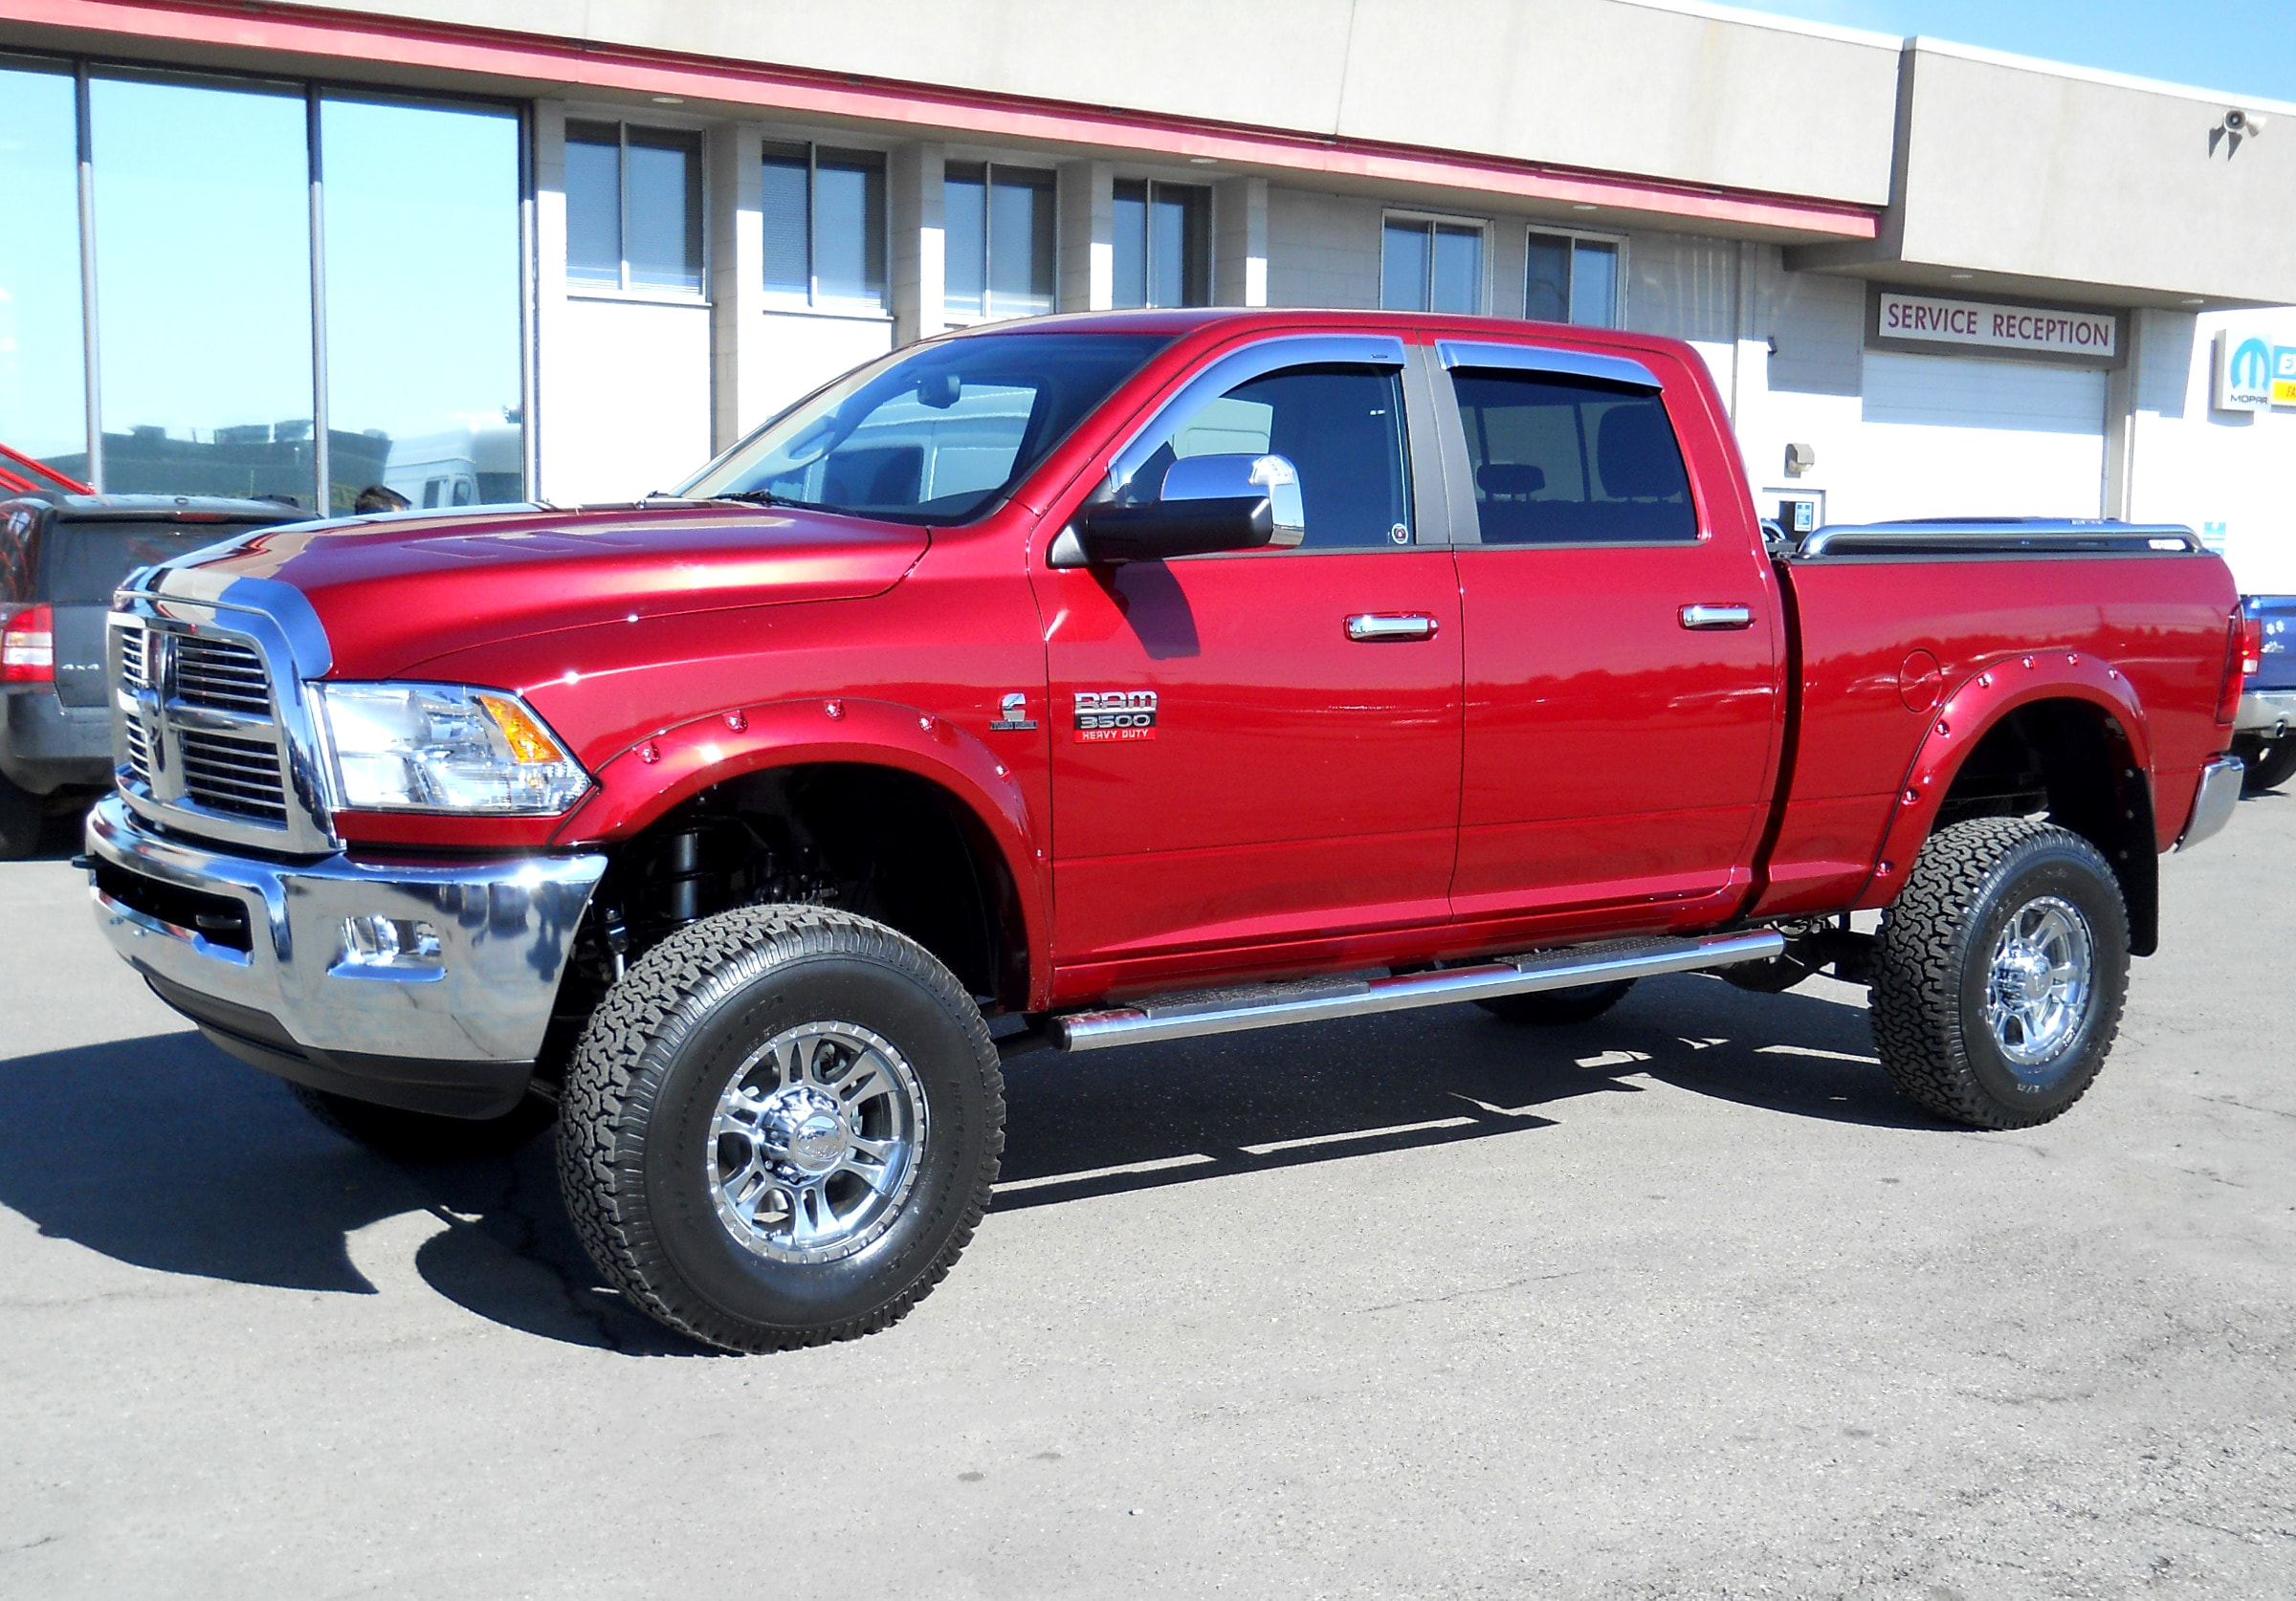 high ram sale by urt for trucks prairie biglakesdodge big dodge the lakes impressive owner used